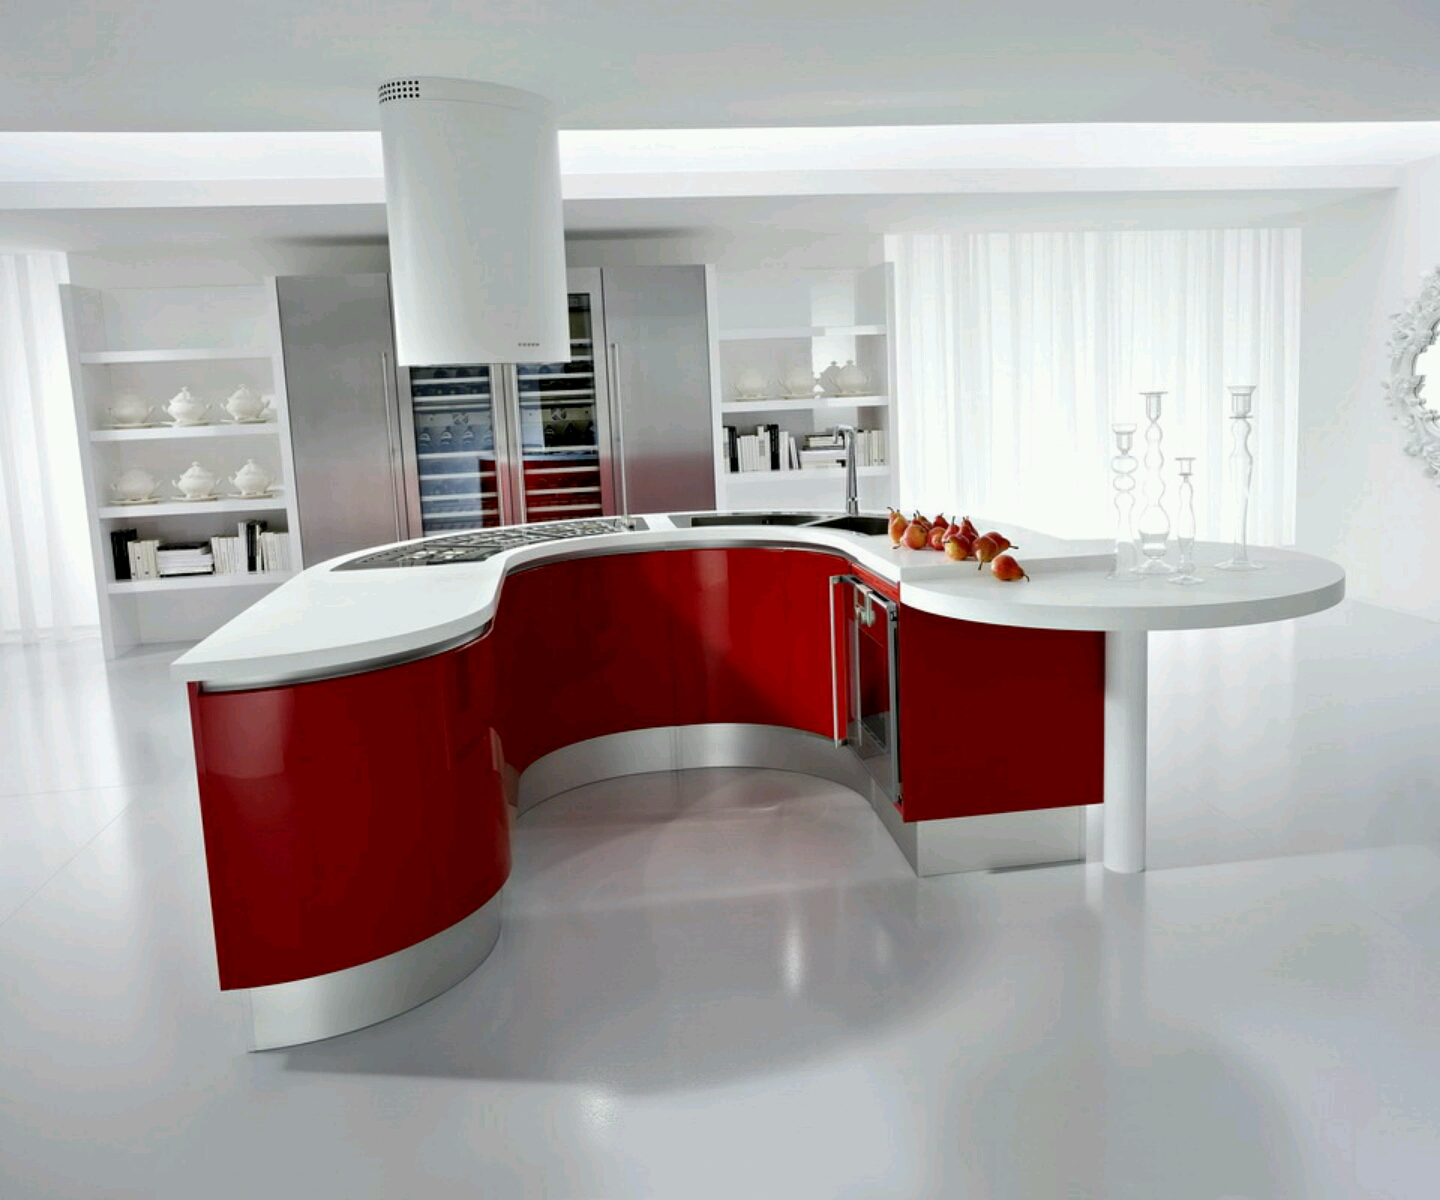 Modern kitchen cabinets designs ideas furniture gallery Kitchen design pictures modern